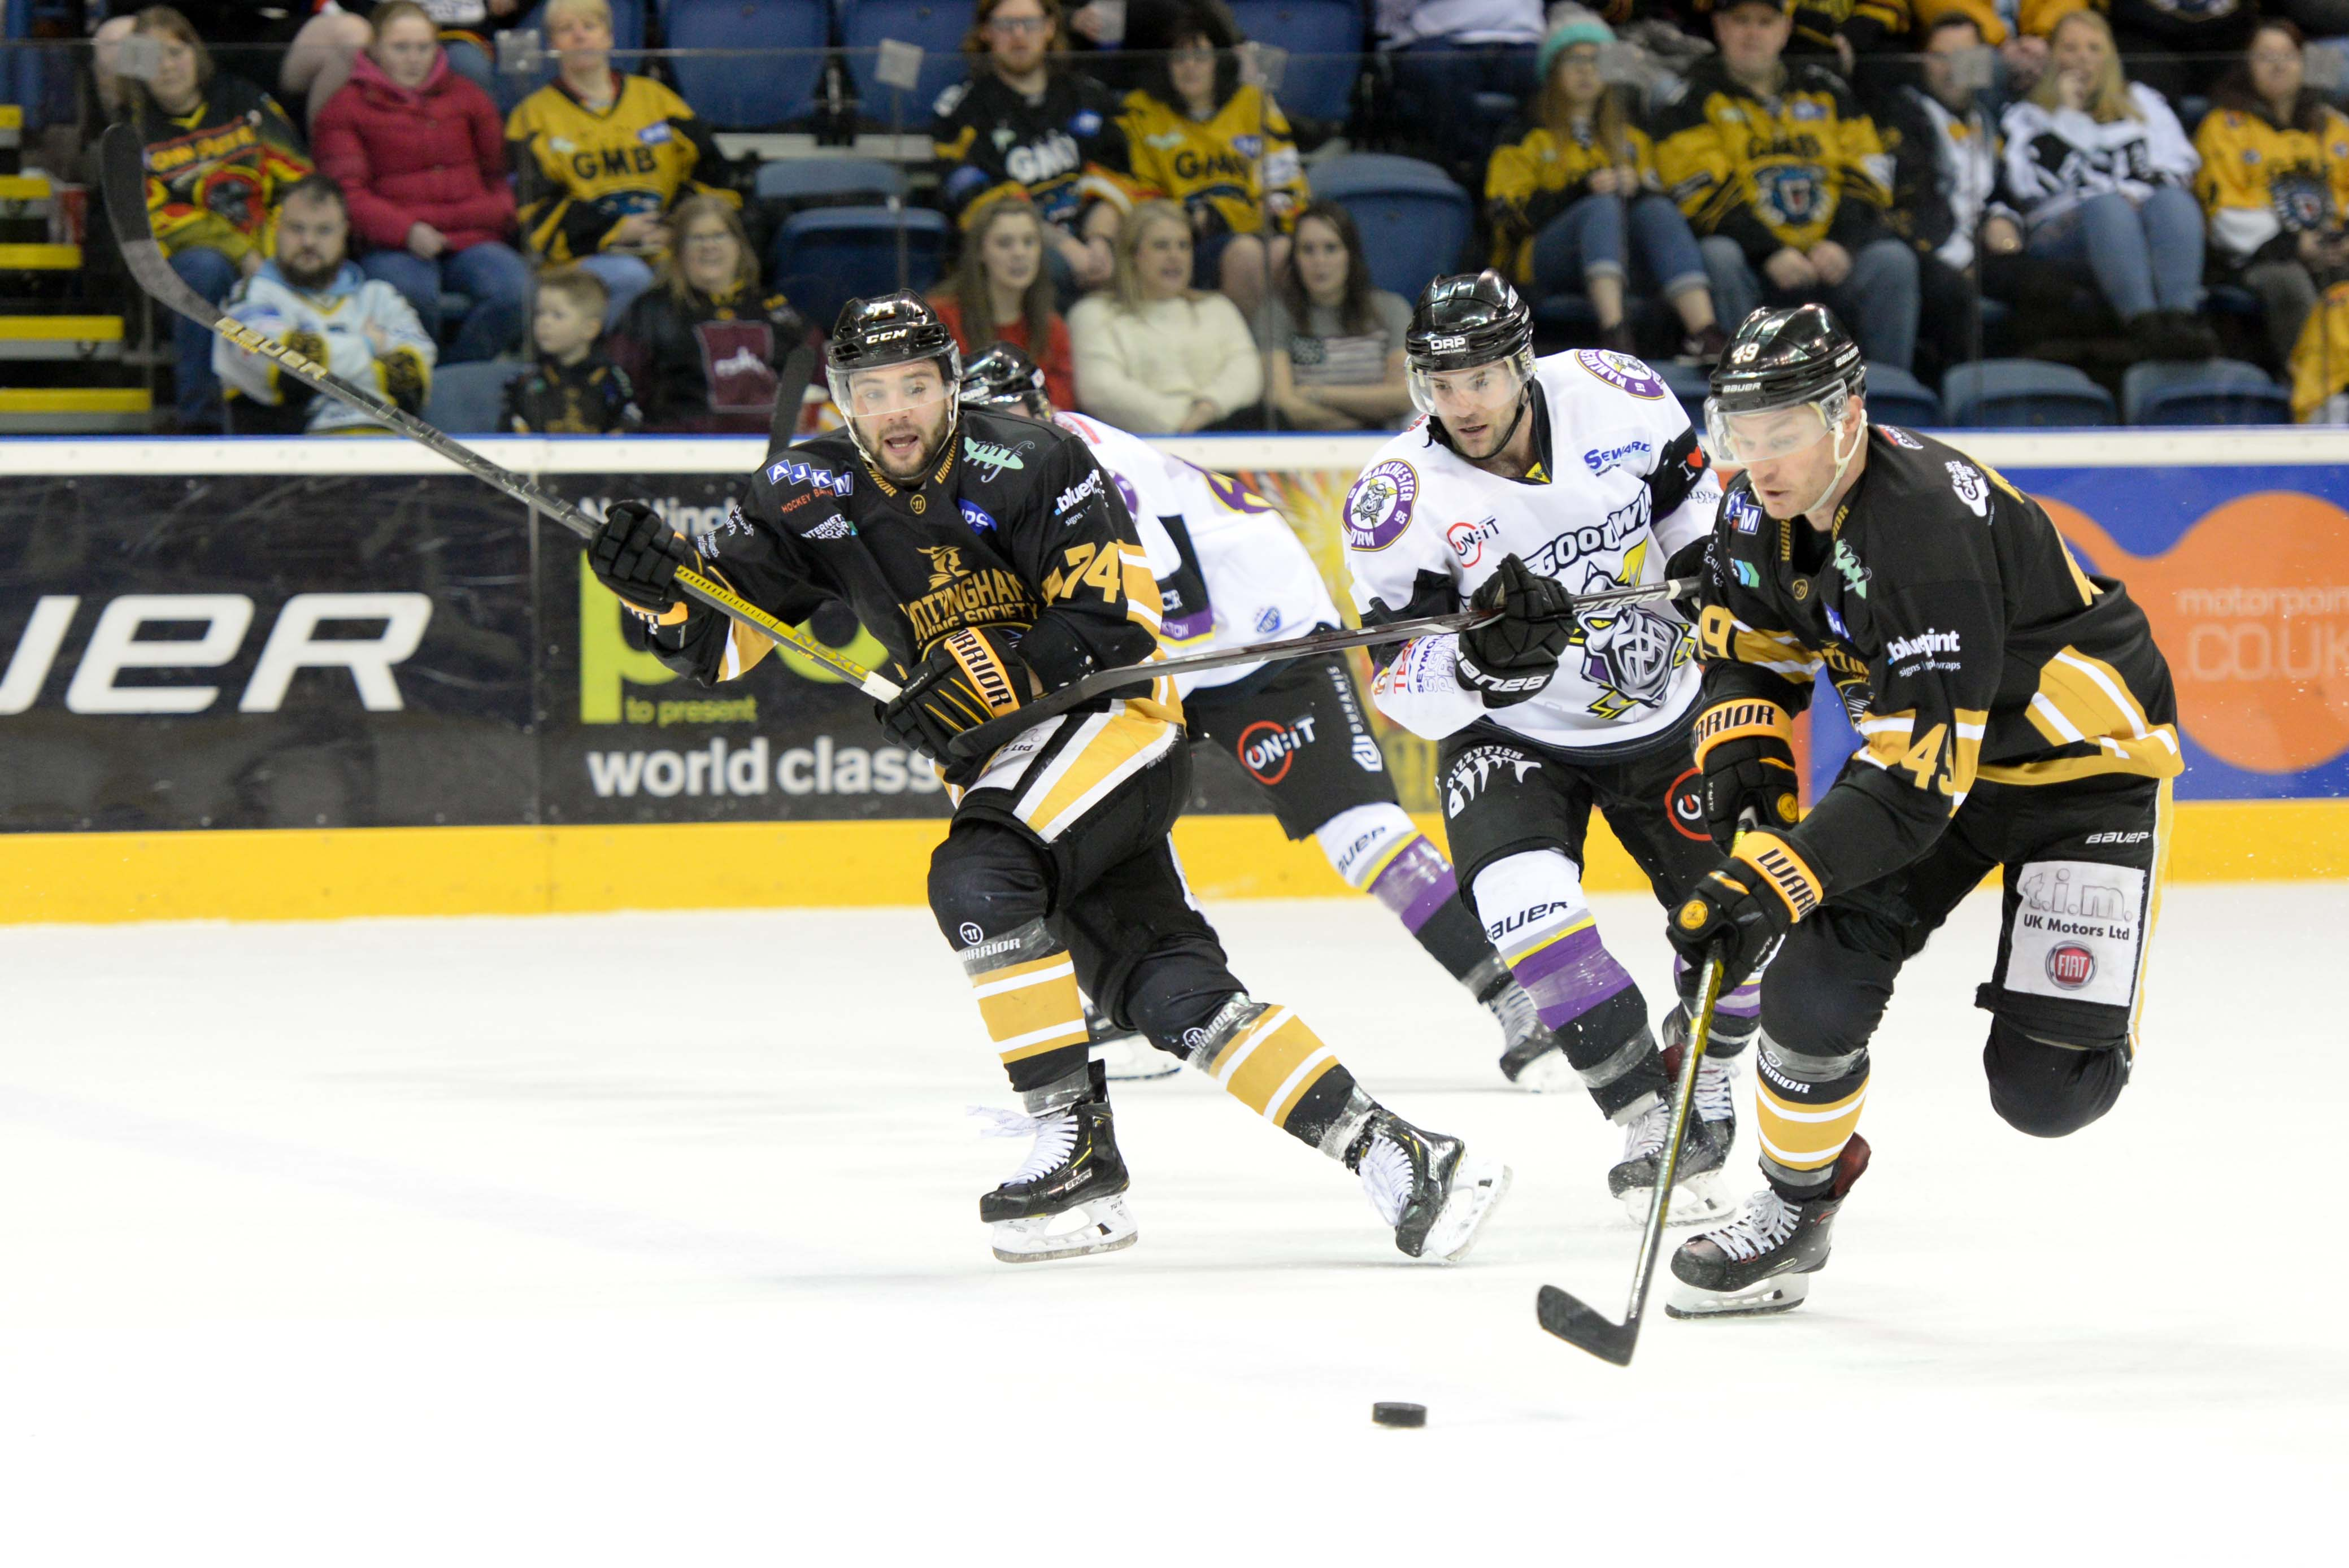 Panthers vs Storm: On Sale Monday! - 16/03/19 Top Image